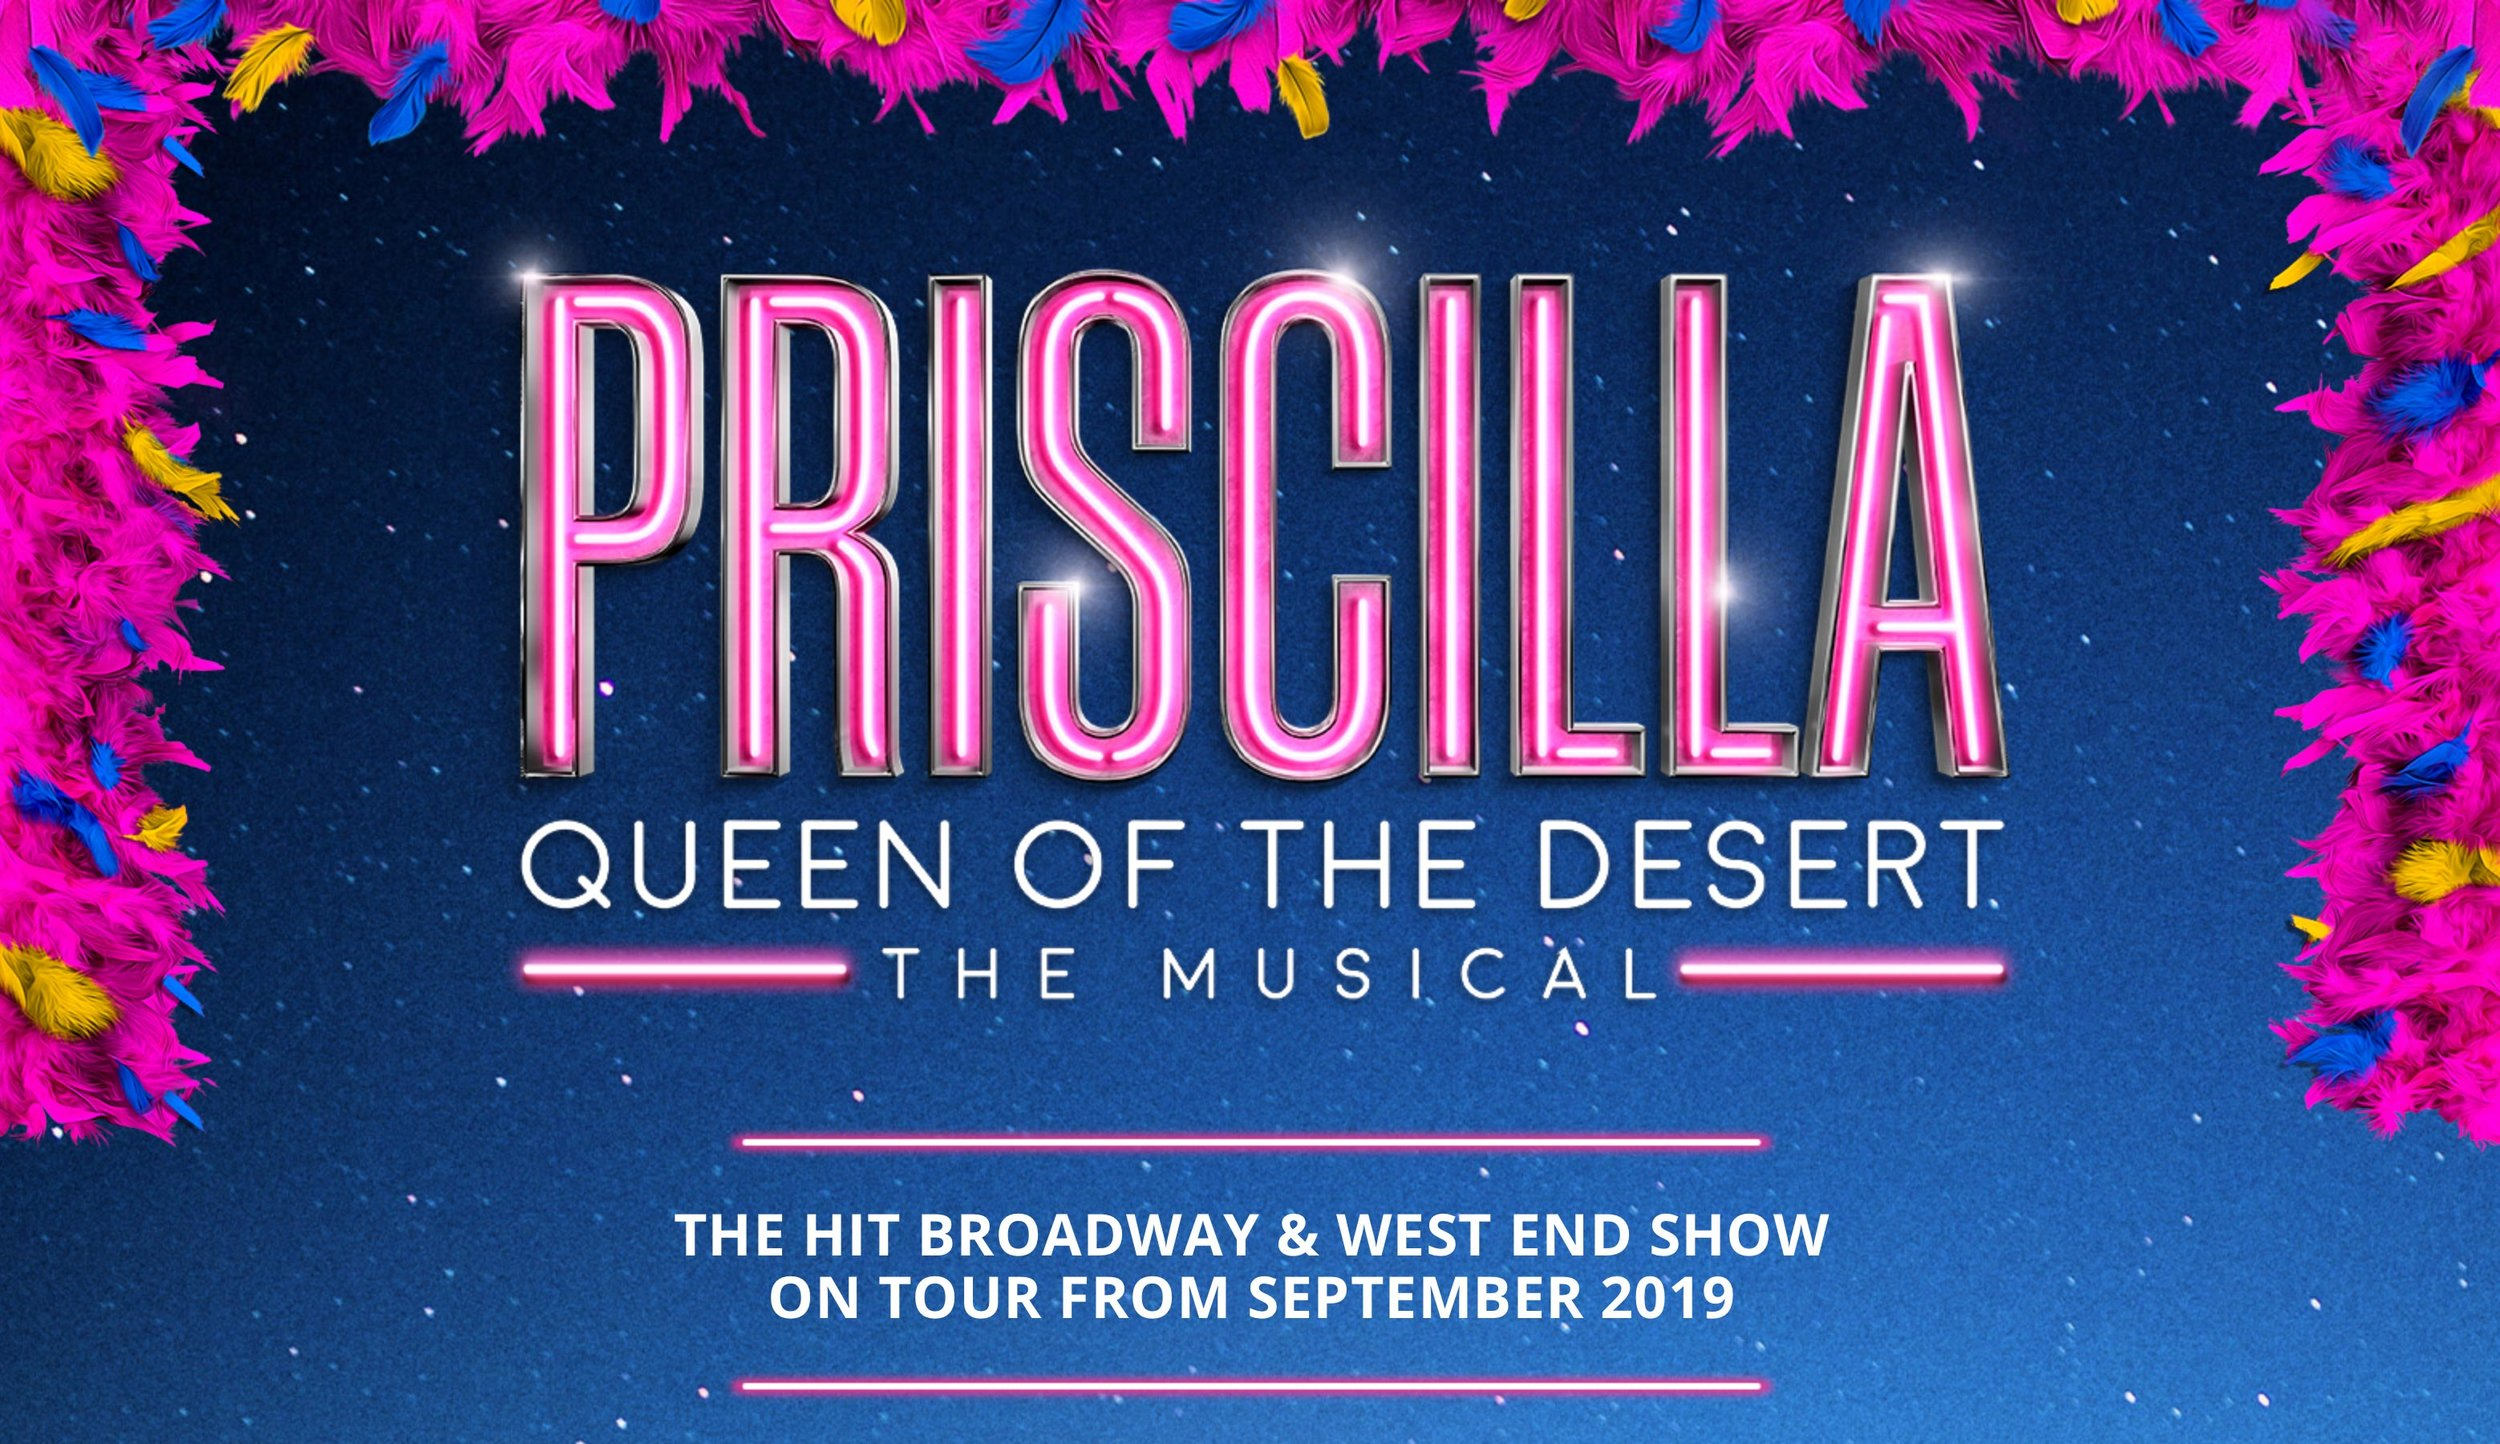 Priscilla Queen of the Desert - We are the newly appointed orchestral manager for Jason Donovan's new UK tour of Priscilla Queen of the Desert.The tour begins September 2019.